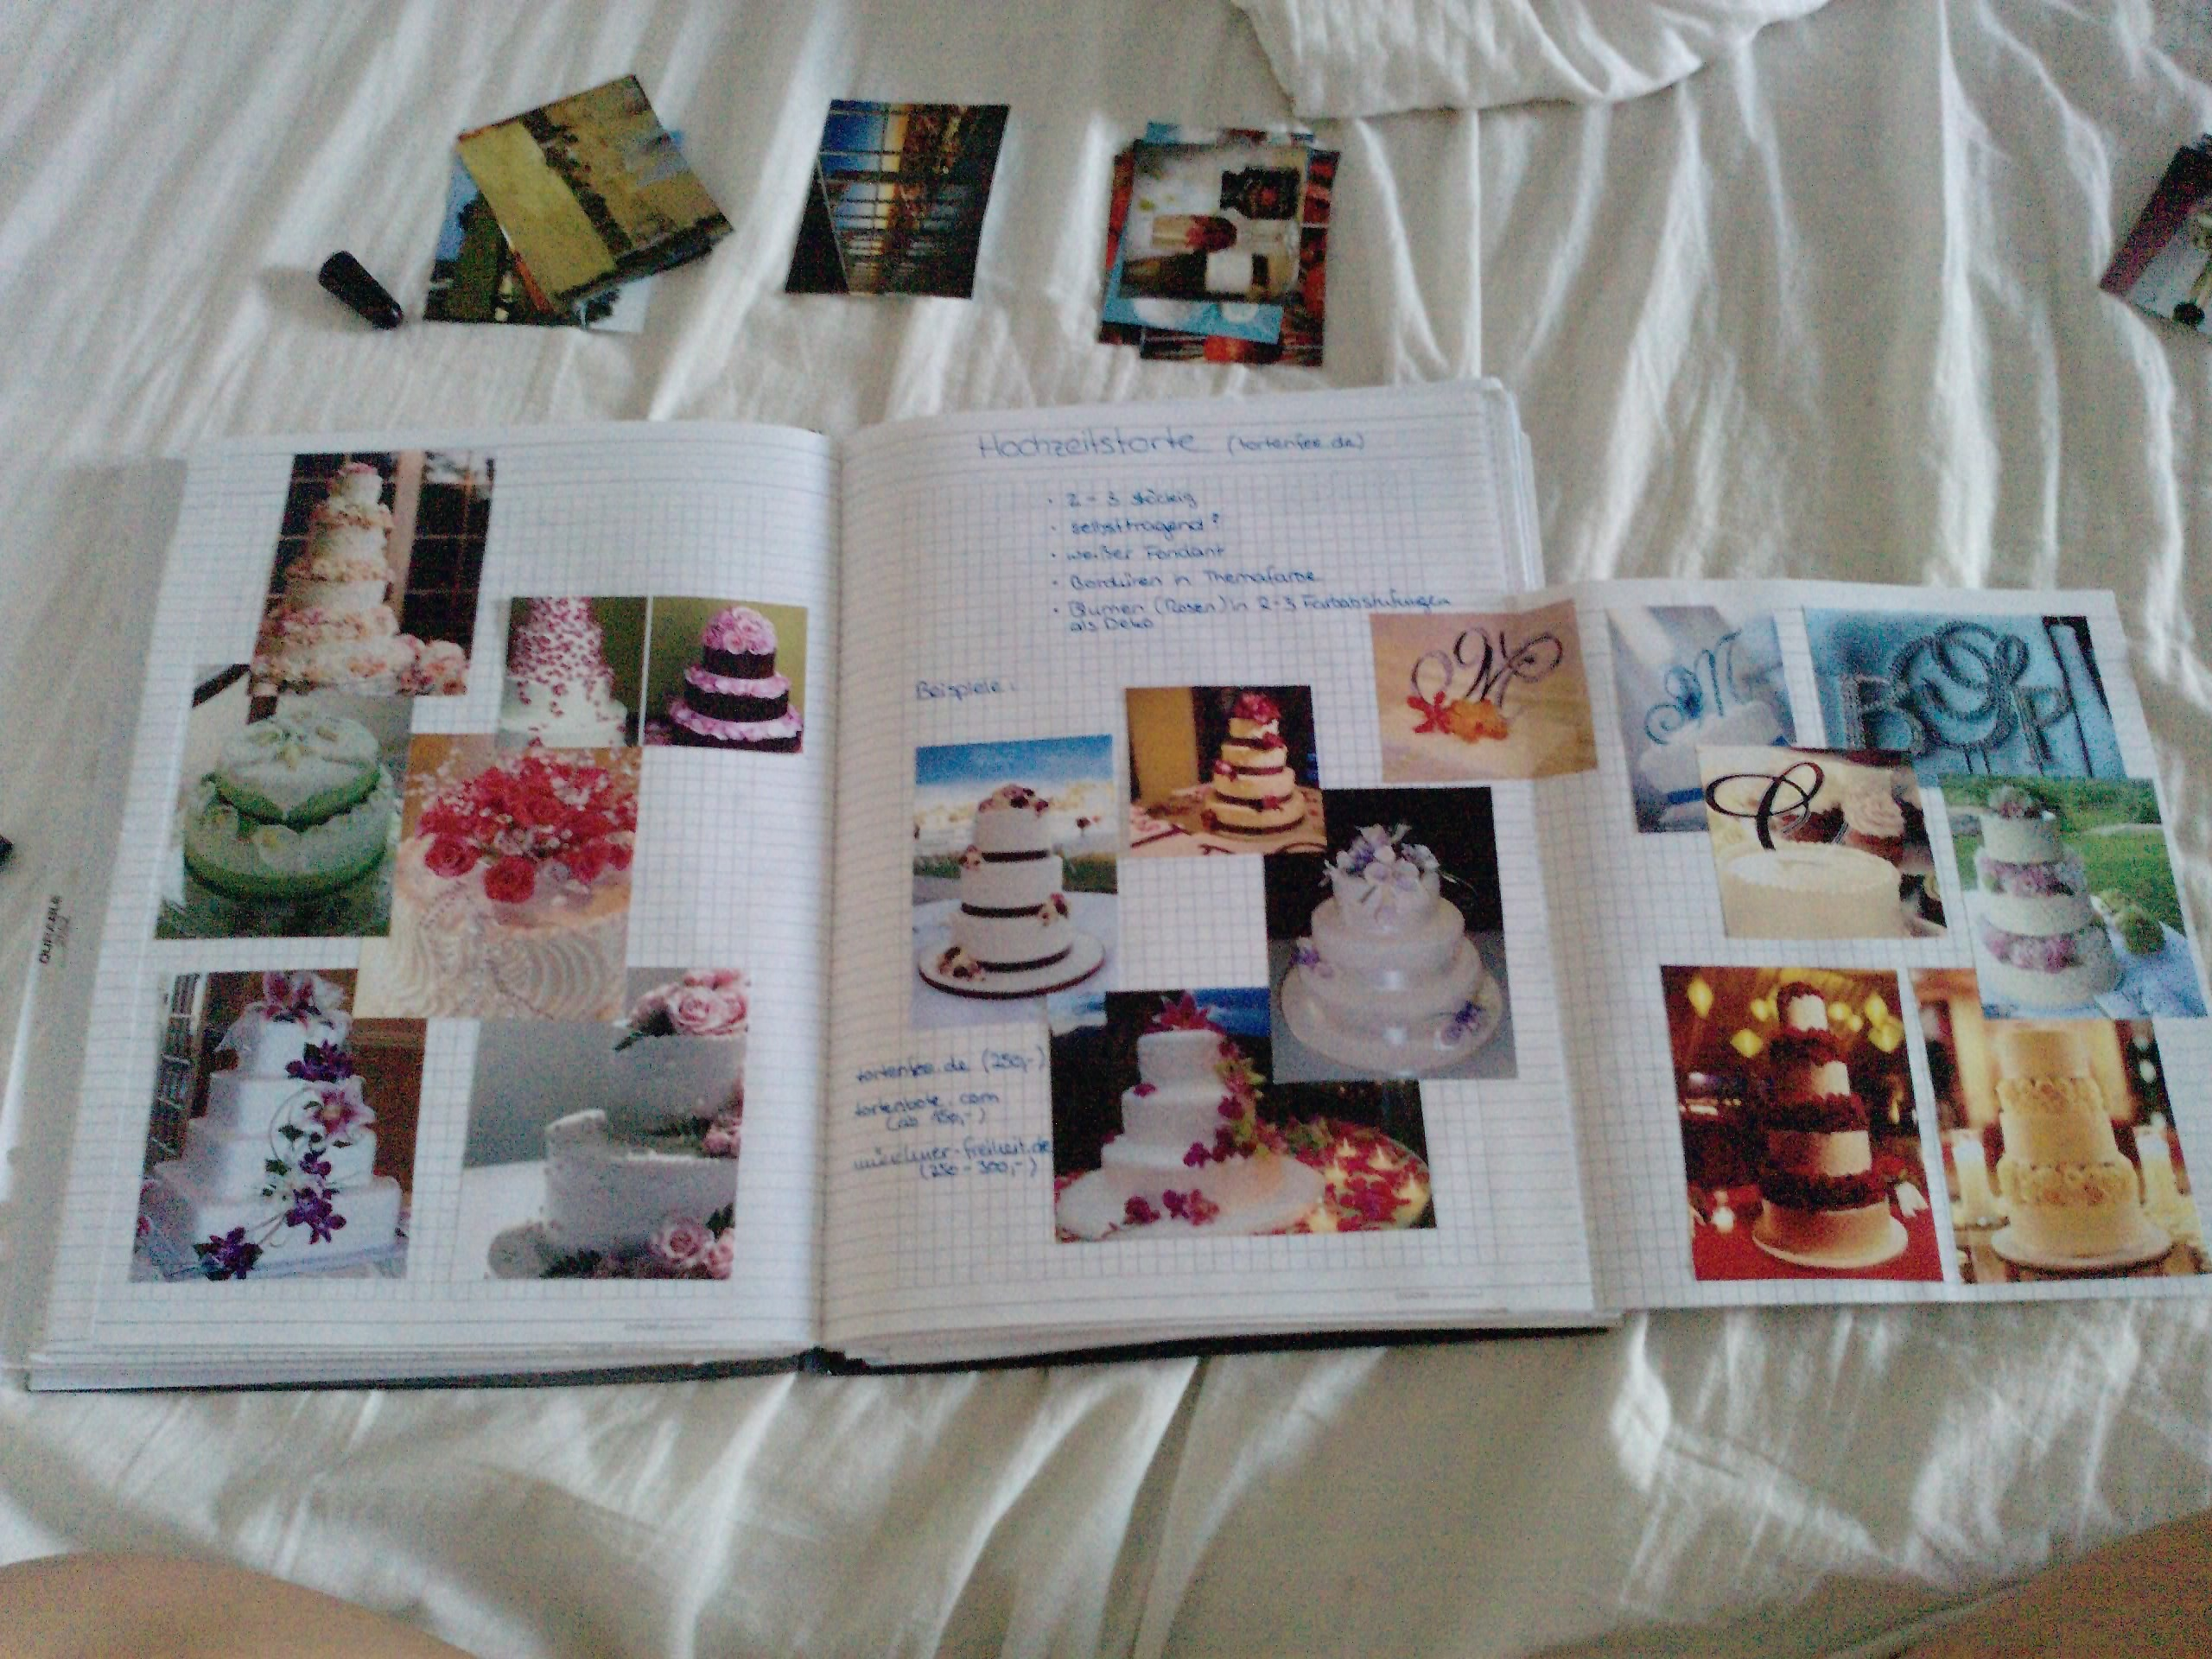 Inspiration, Planning, Book, Board, Plan